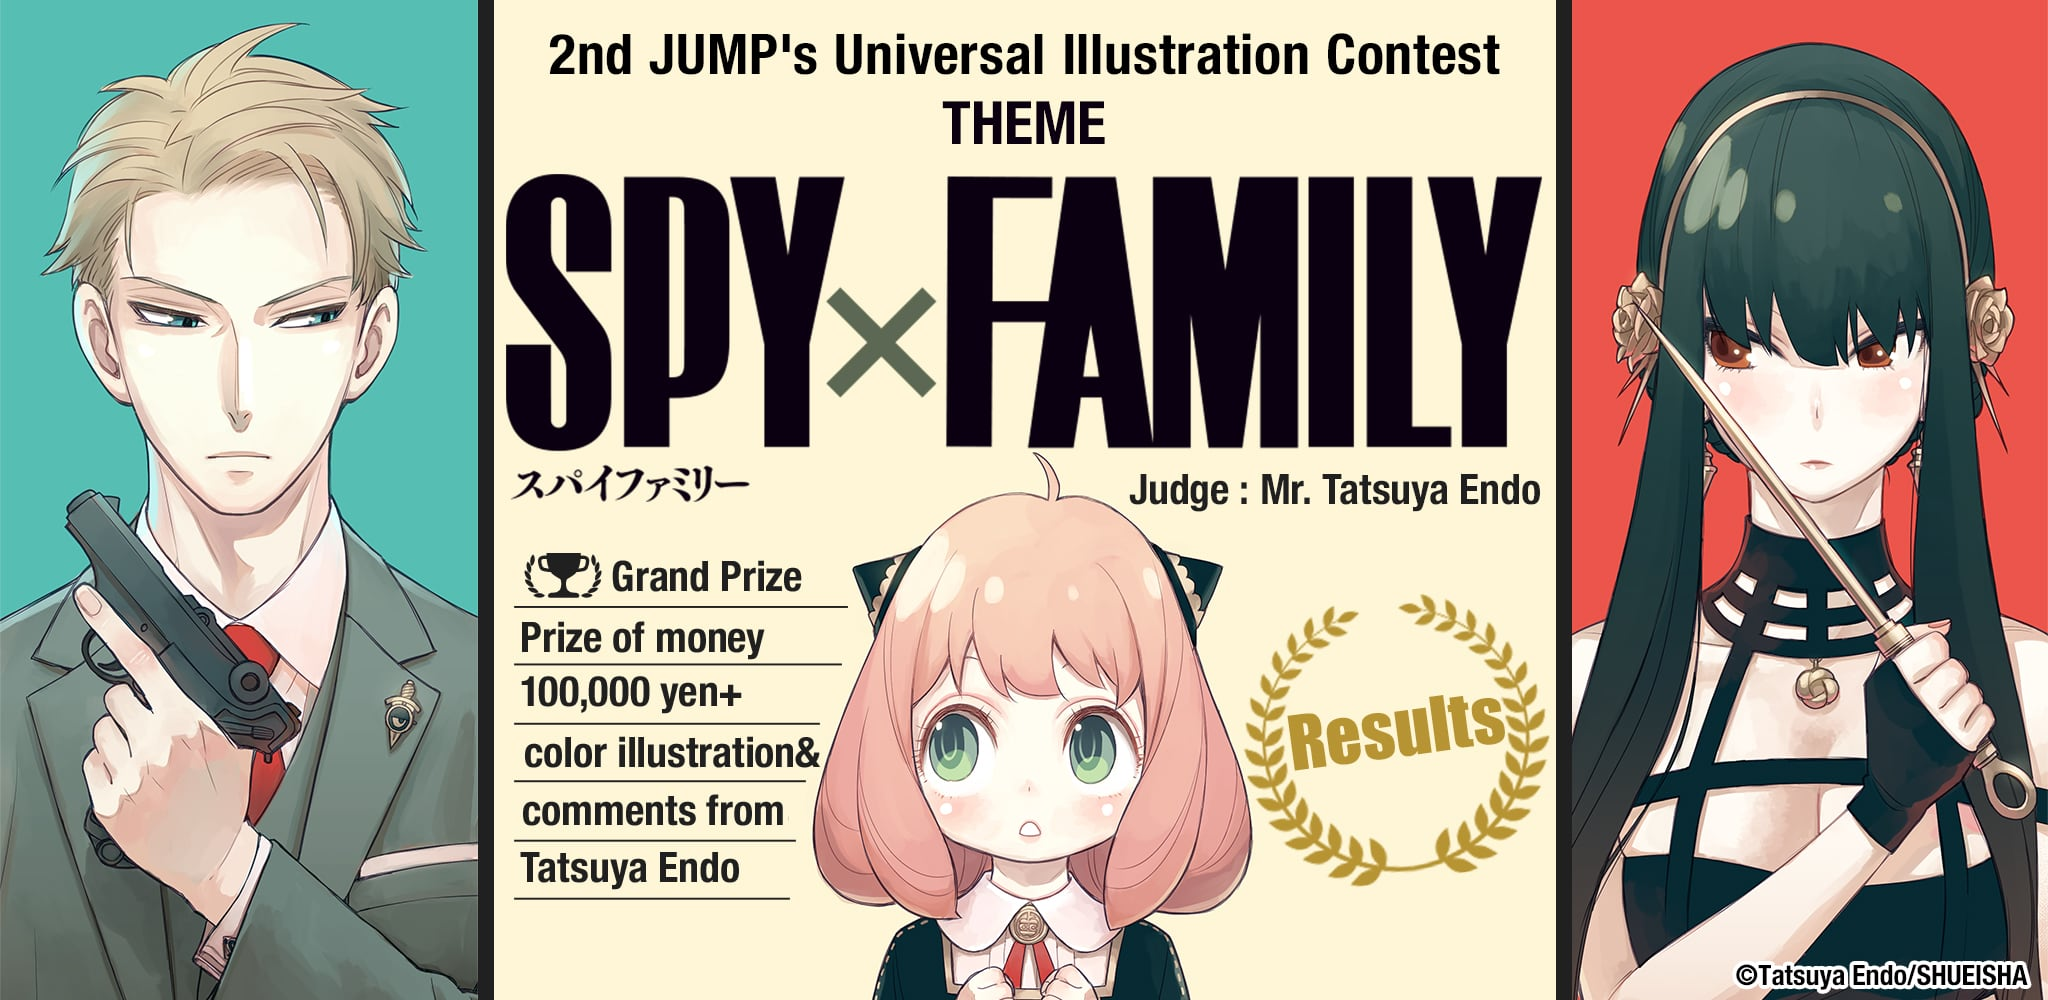 2nd JUMP's Universal Illustration Contest Theme:SPY×FAMILY Results   Contest - ART street by MediBang